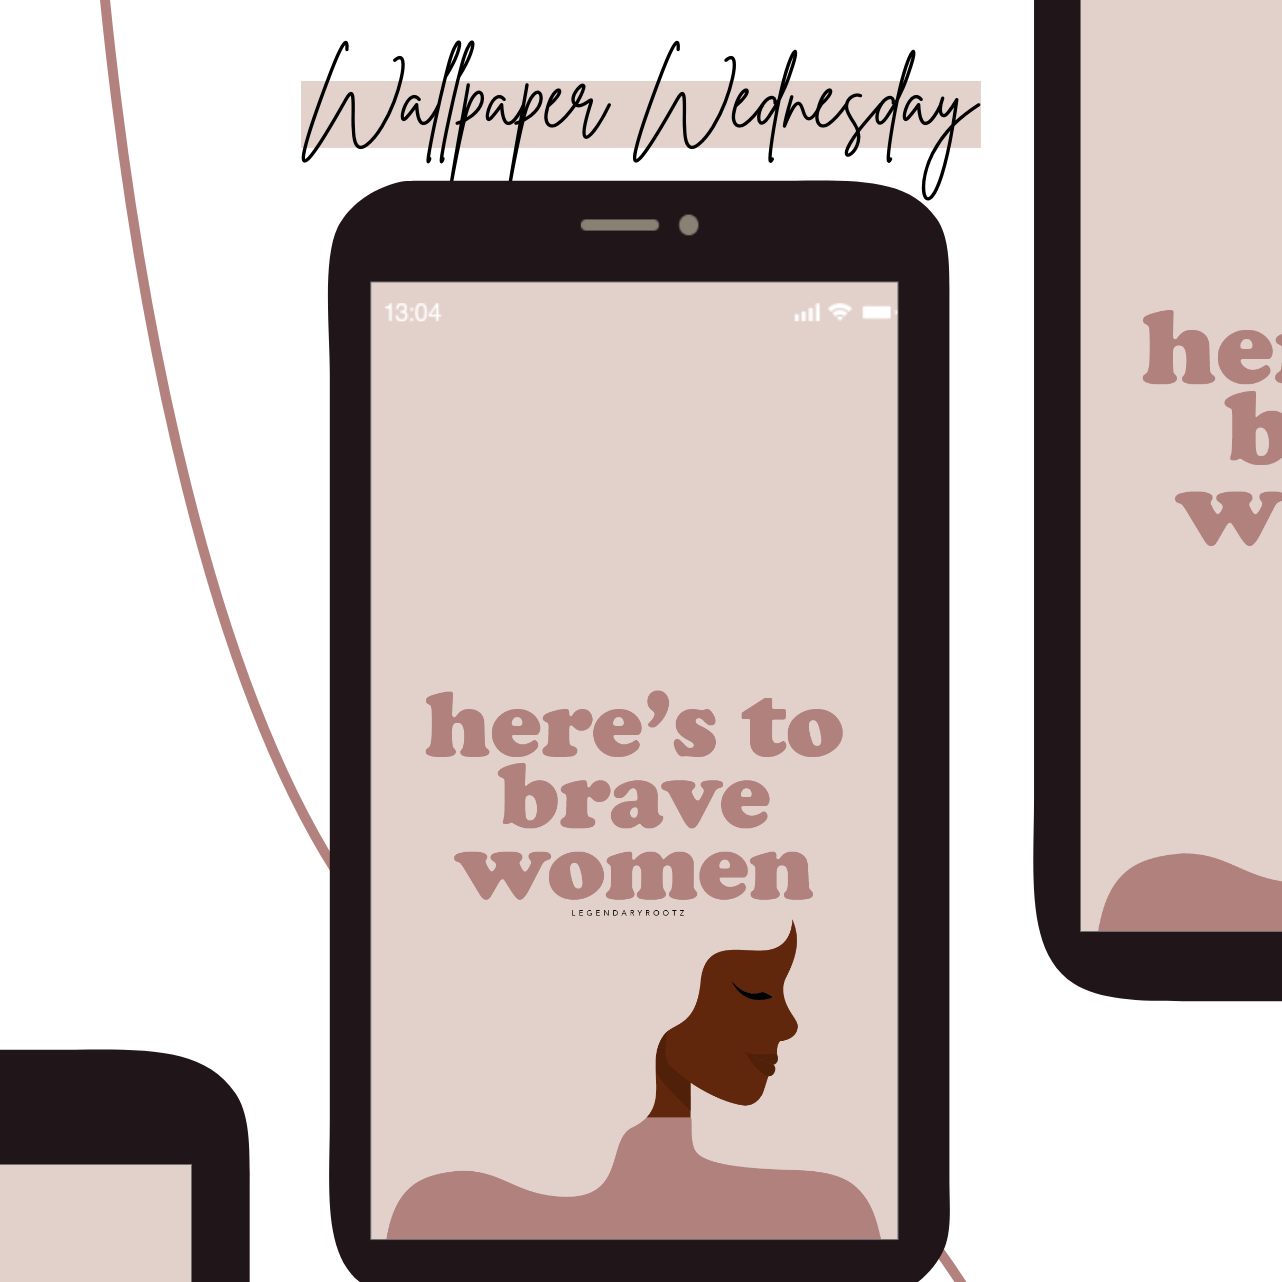 Here's To Brave Women | Wallpaper Pack